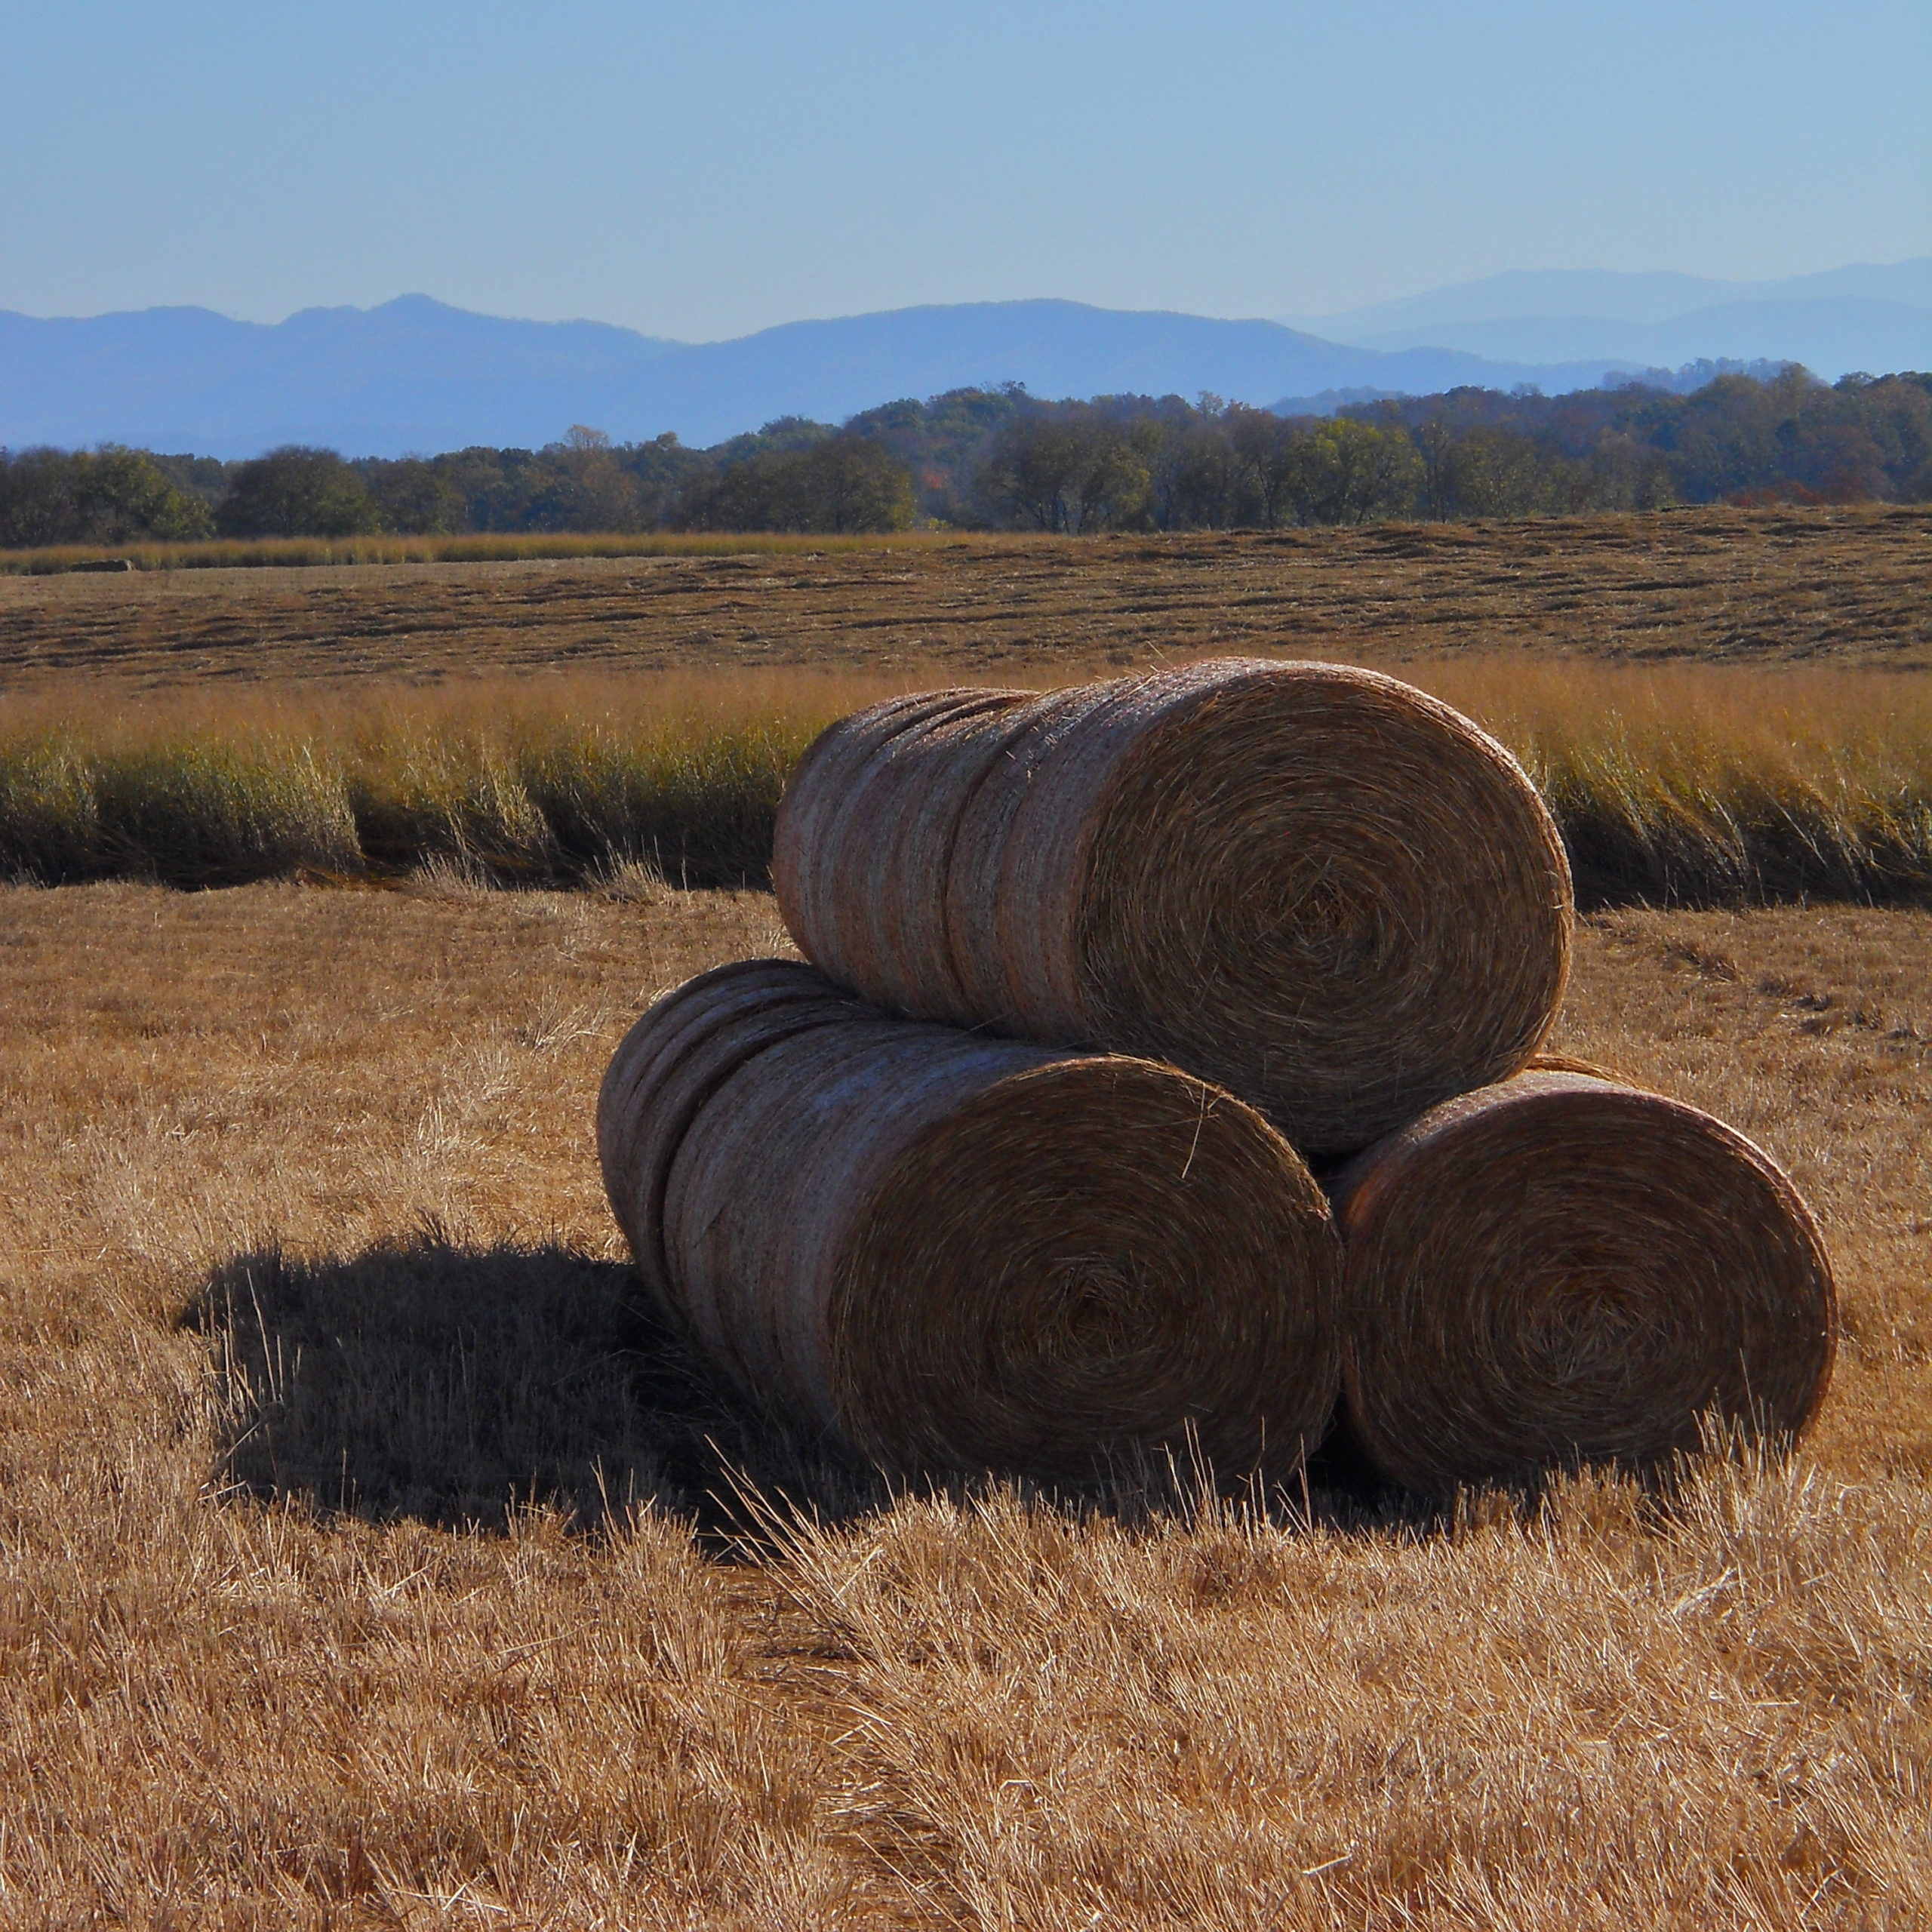 switchgrass bales in field with mountain backdrop